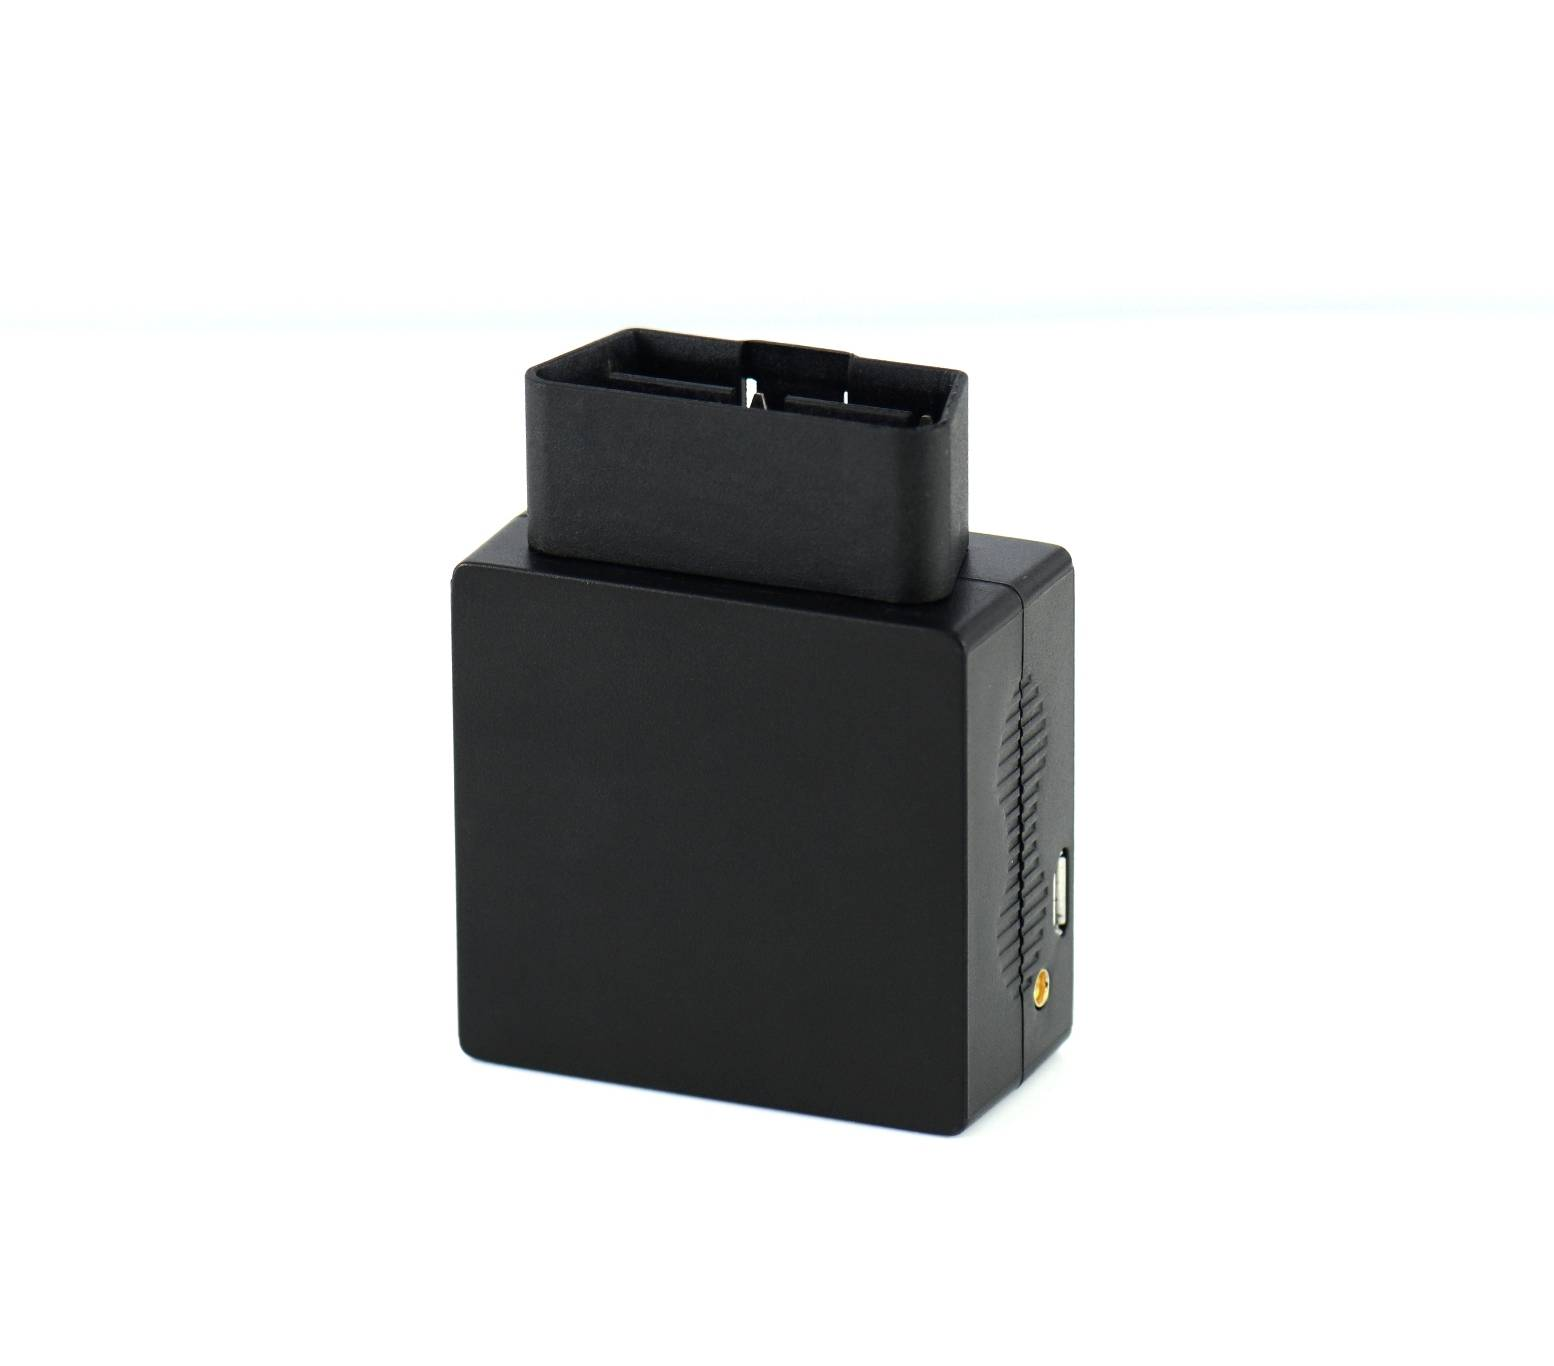 3G OBD GPS tracking device